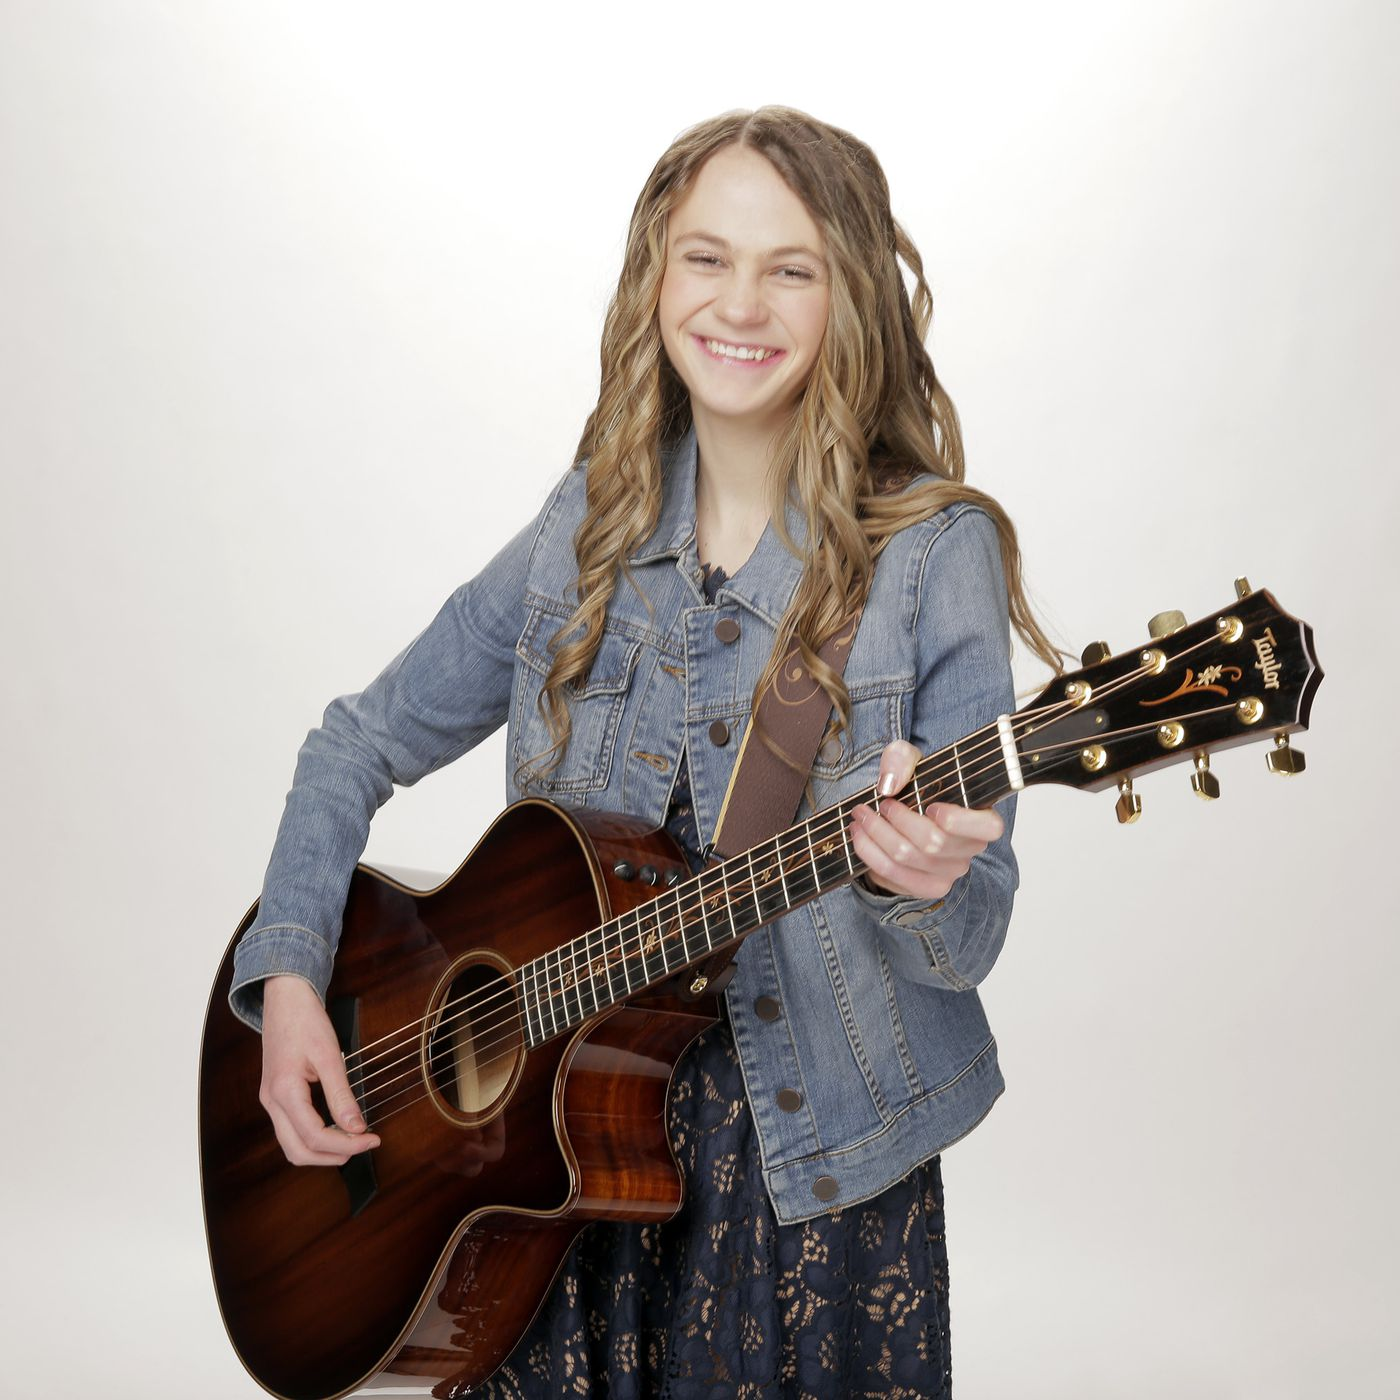 Agt 2020 Kenadi Dodds A 15 Year Old Country Singer From Utah Wows Judges Deseret News